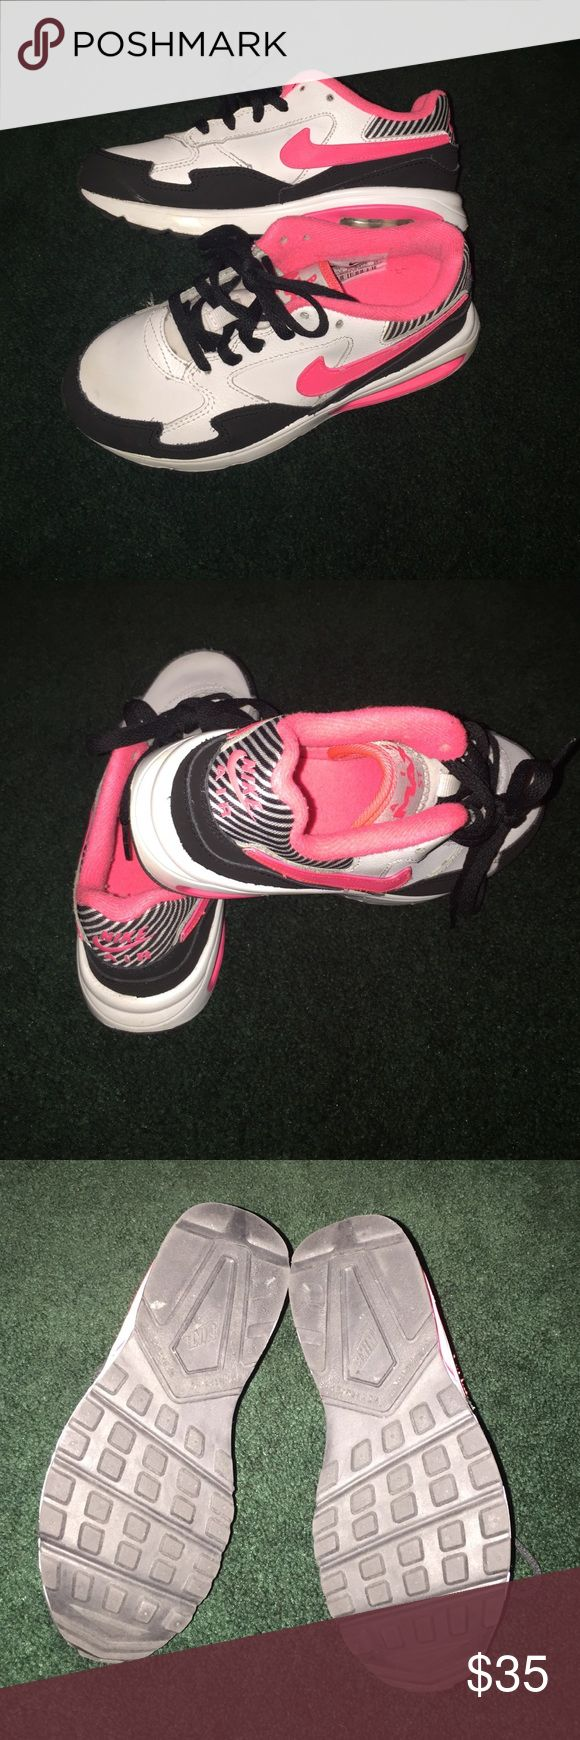 Kids Air Max!!!!! Neon pink and black air max for children!!!! Black cloth material at the front of shoes, white base and a pink swoosh! Shoes are like new!!! Worn a couple times!!! Nike Shoes Sneakers